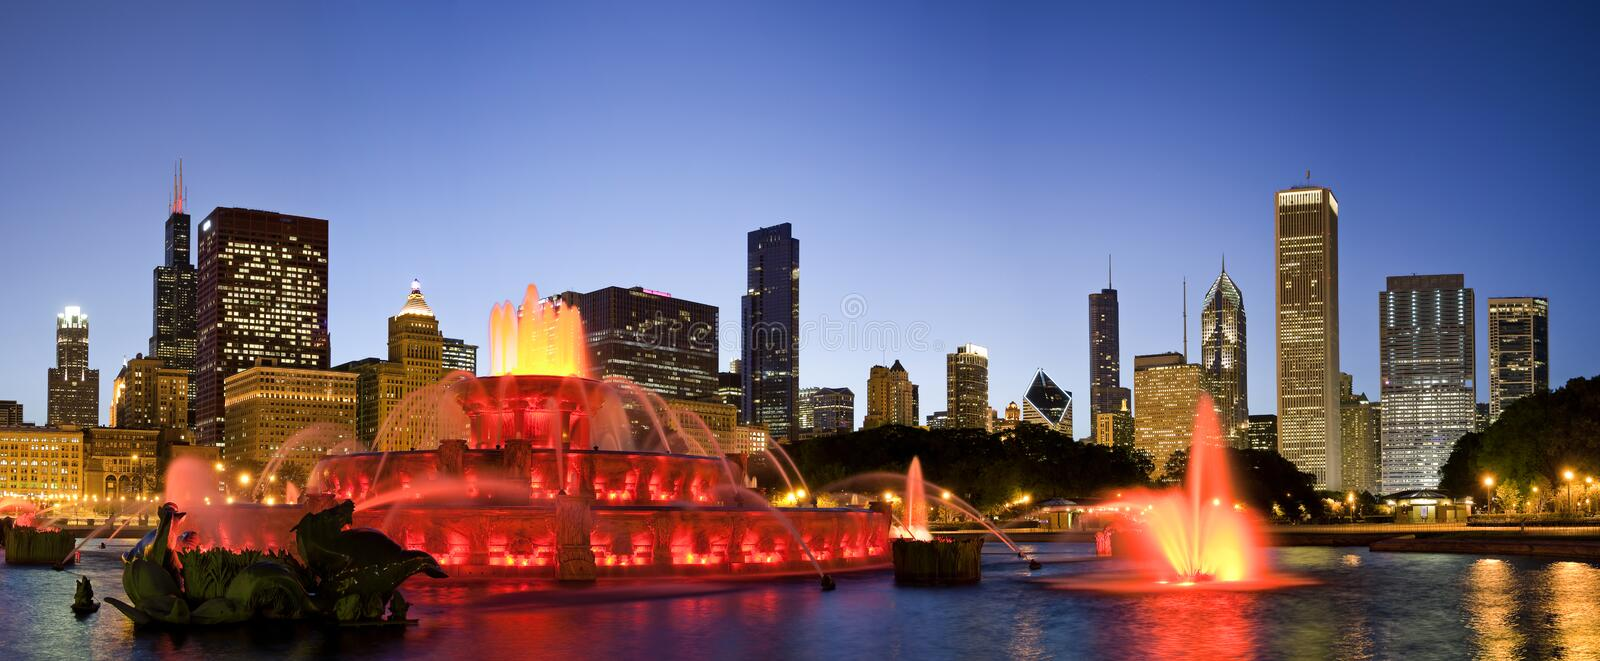 Chicago la nuit images stock